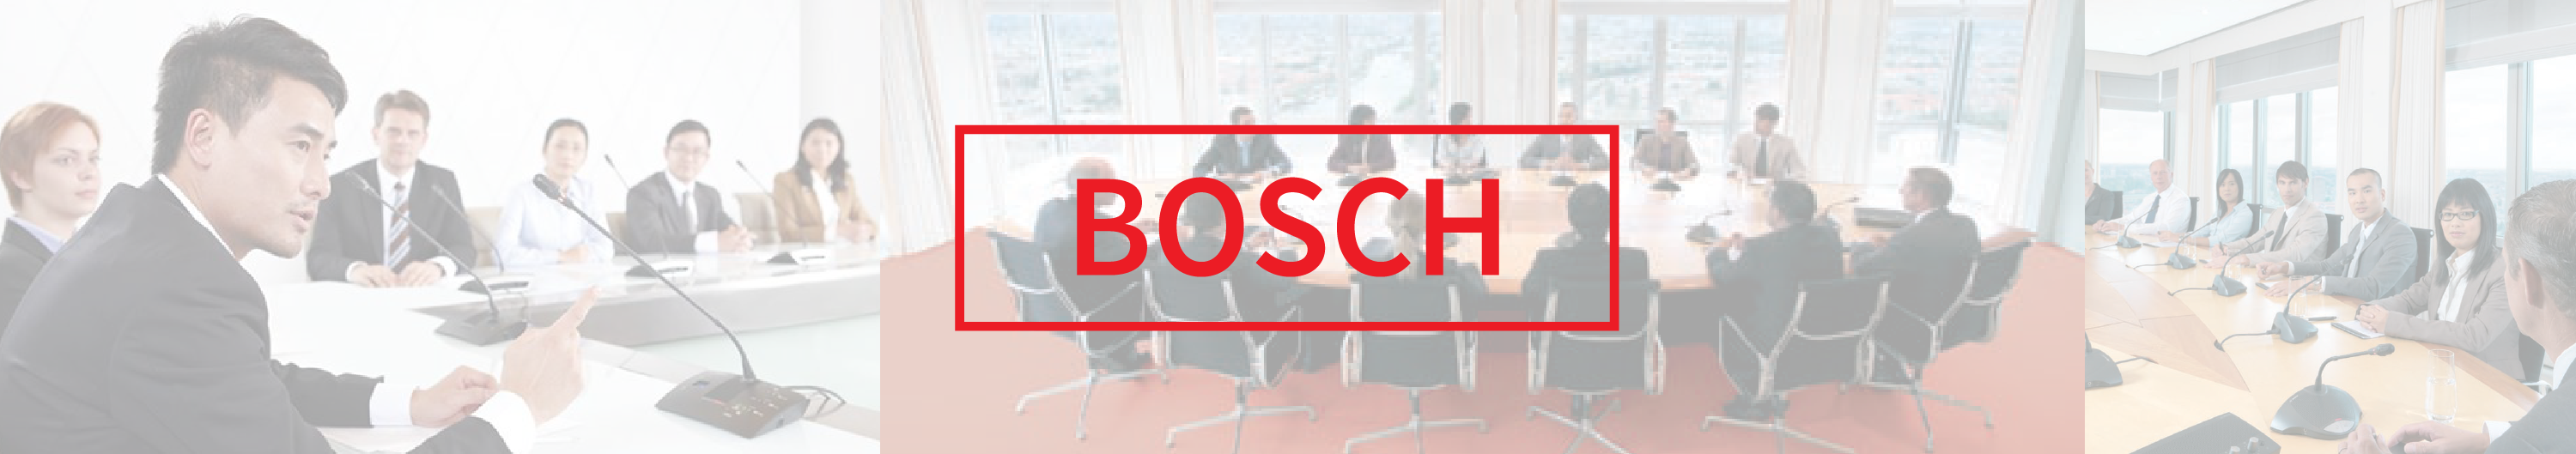 Bosch Conference System Products